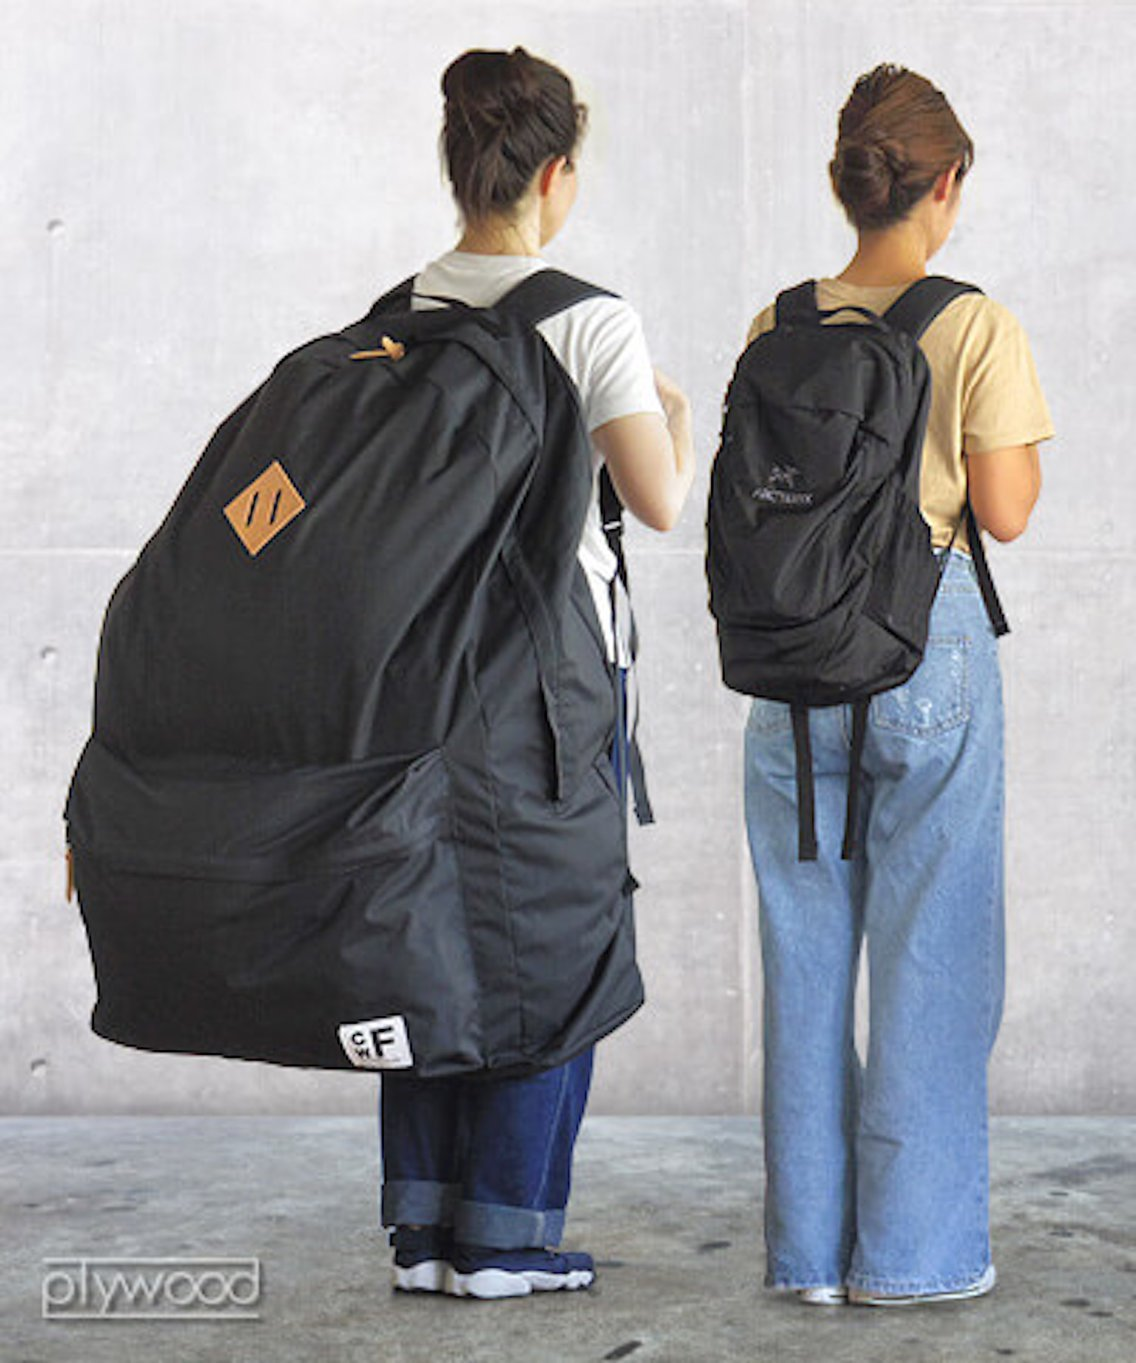 Backpackers Closet Giant Backpack